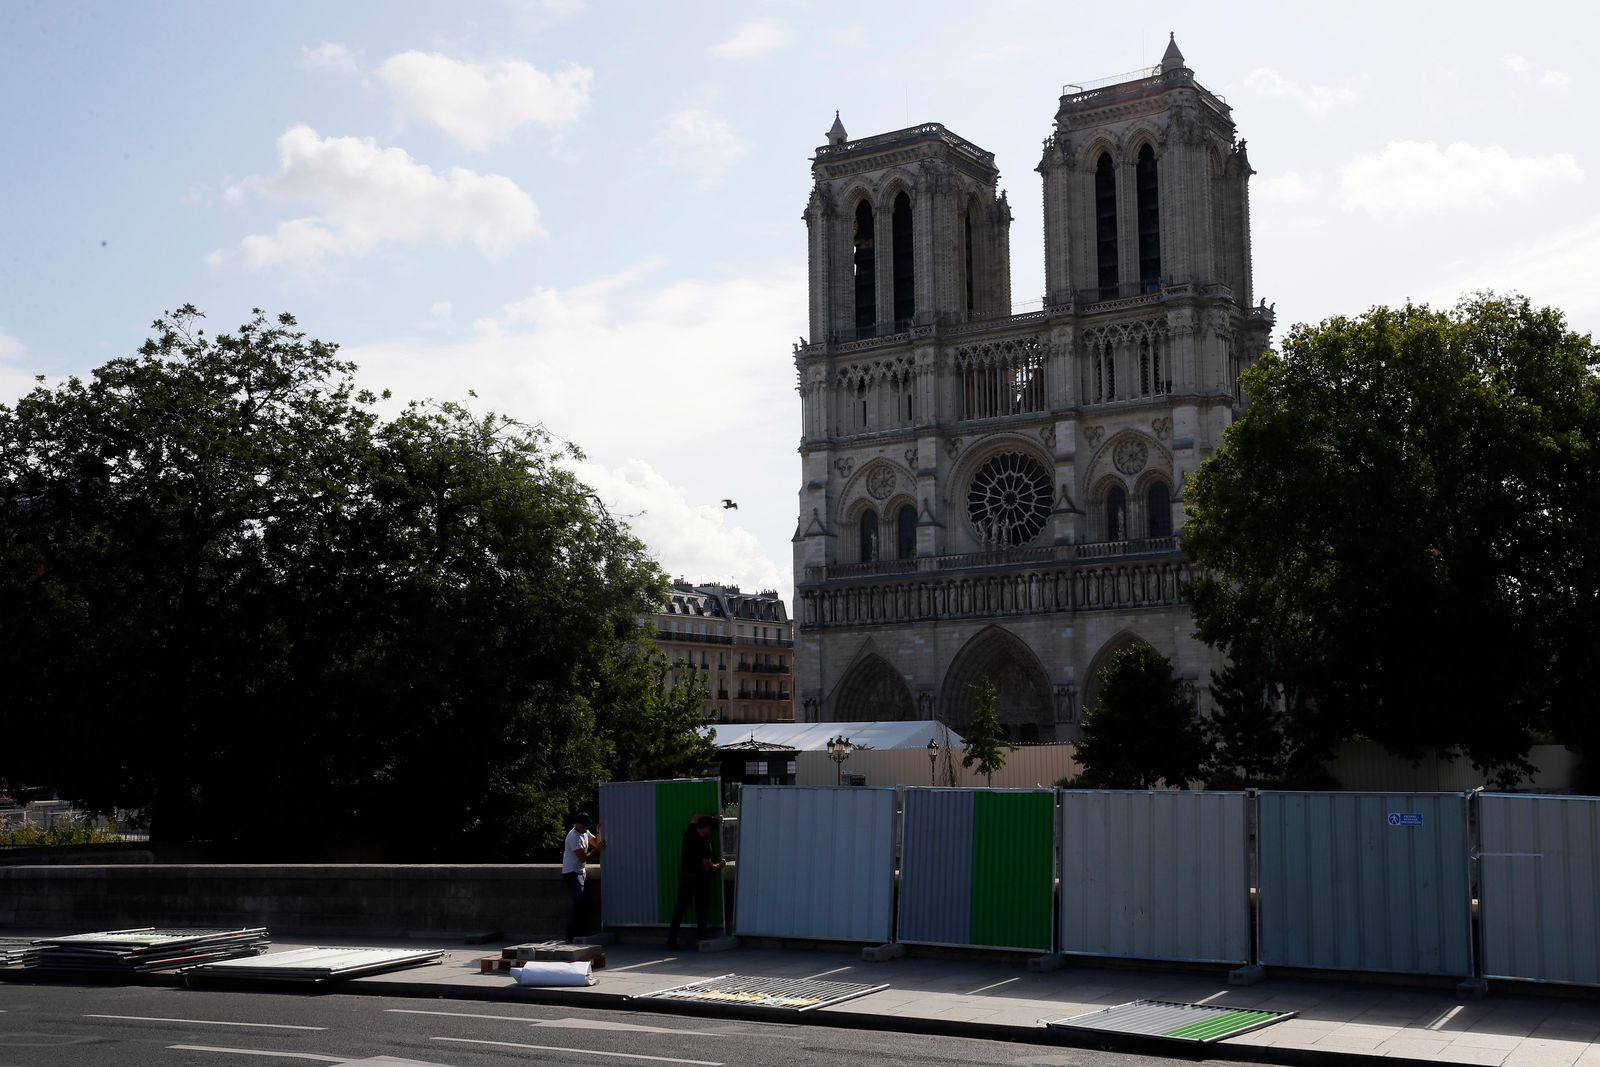 Workers install high fences on a bridge around Notre Dame cathedral in Paris, Tuesday, Aug. 13, 2019.(AP Photo/Francois Mori)